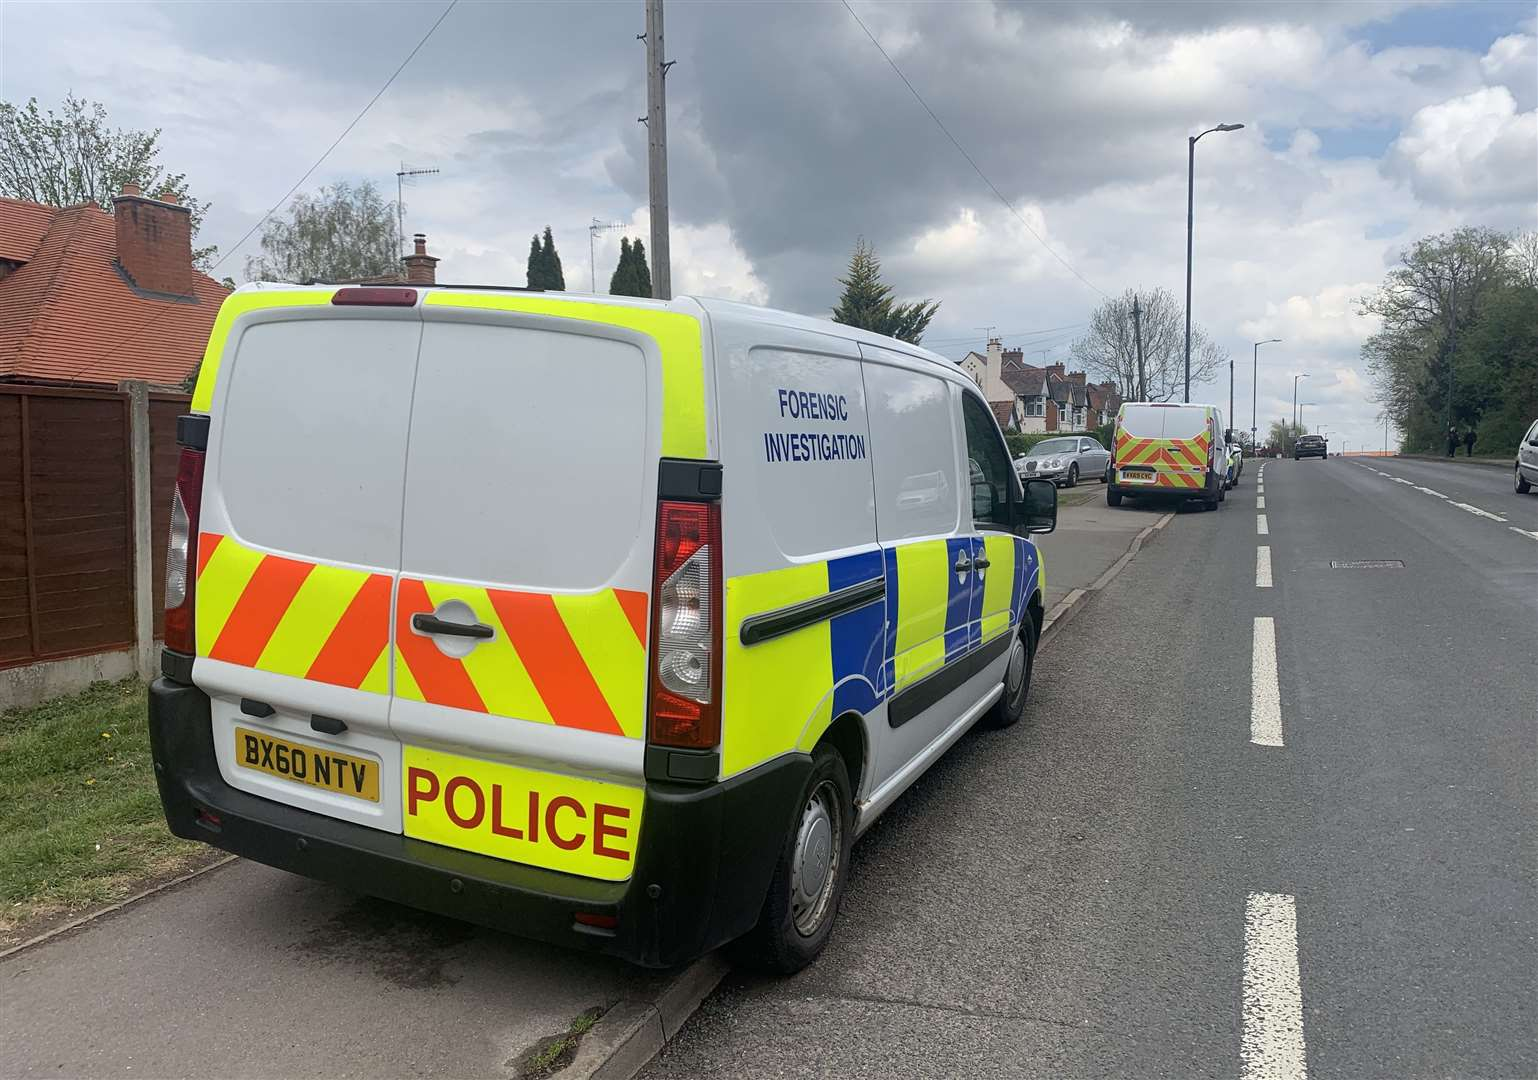 Police at the incident scene on Alcester Road. Photo: Mark Williamson